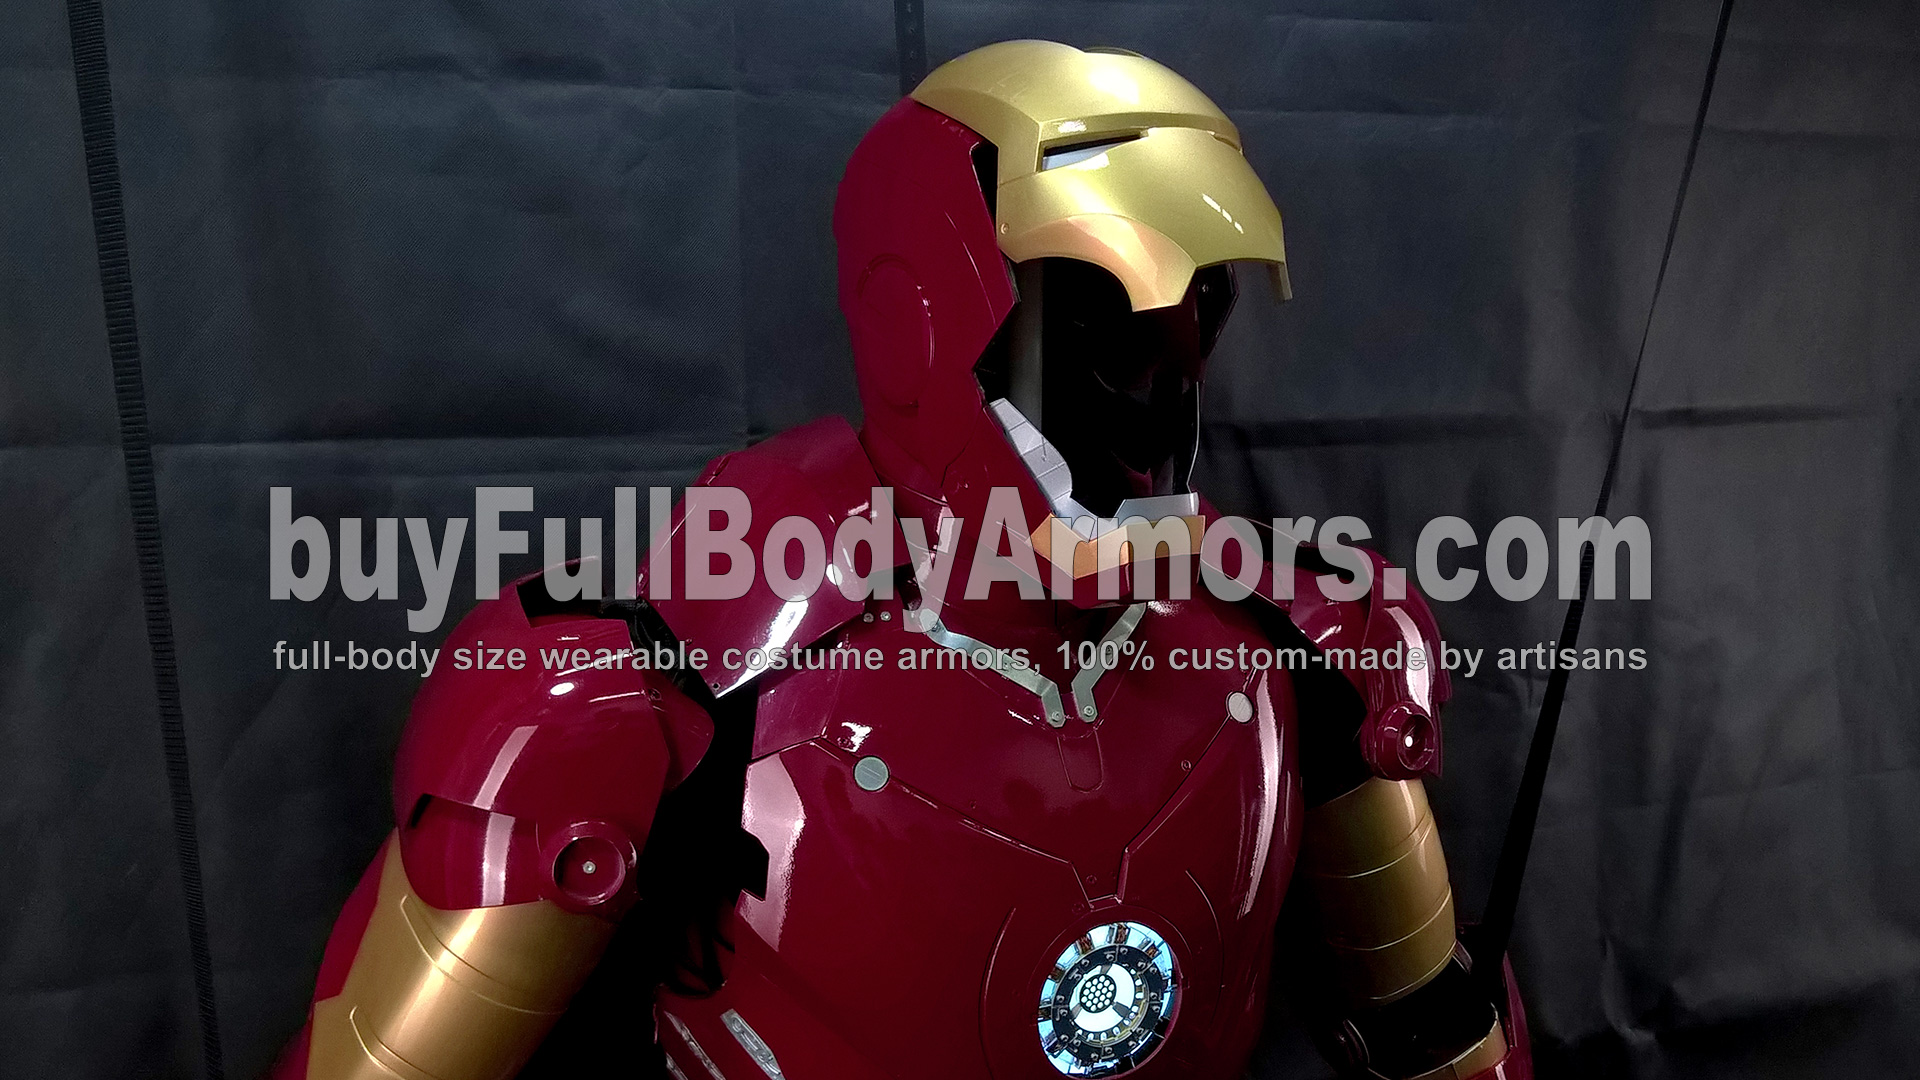 The Wearable Iron Man Suit Mark 3 III Armor Costume - Top Half Prototype 1